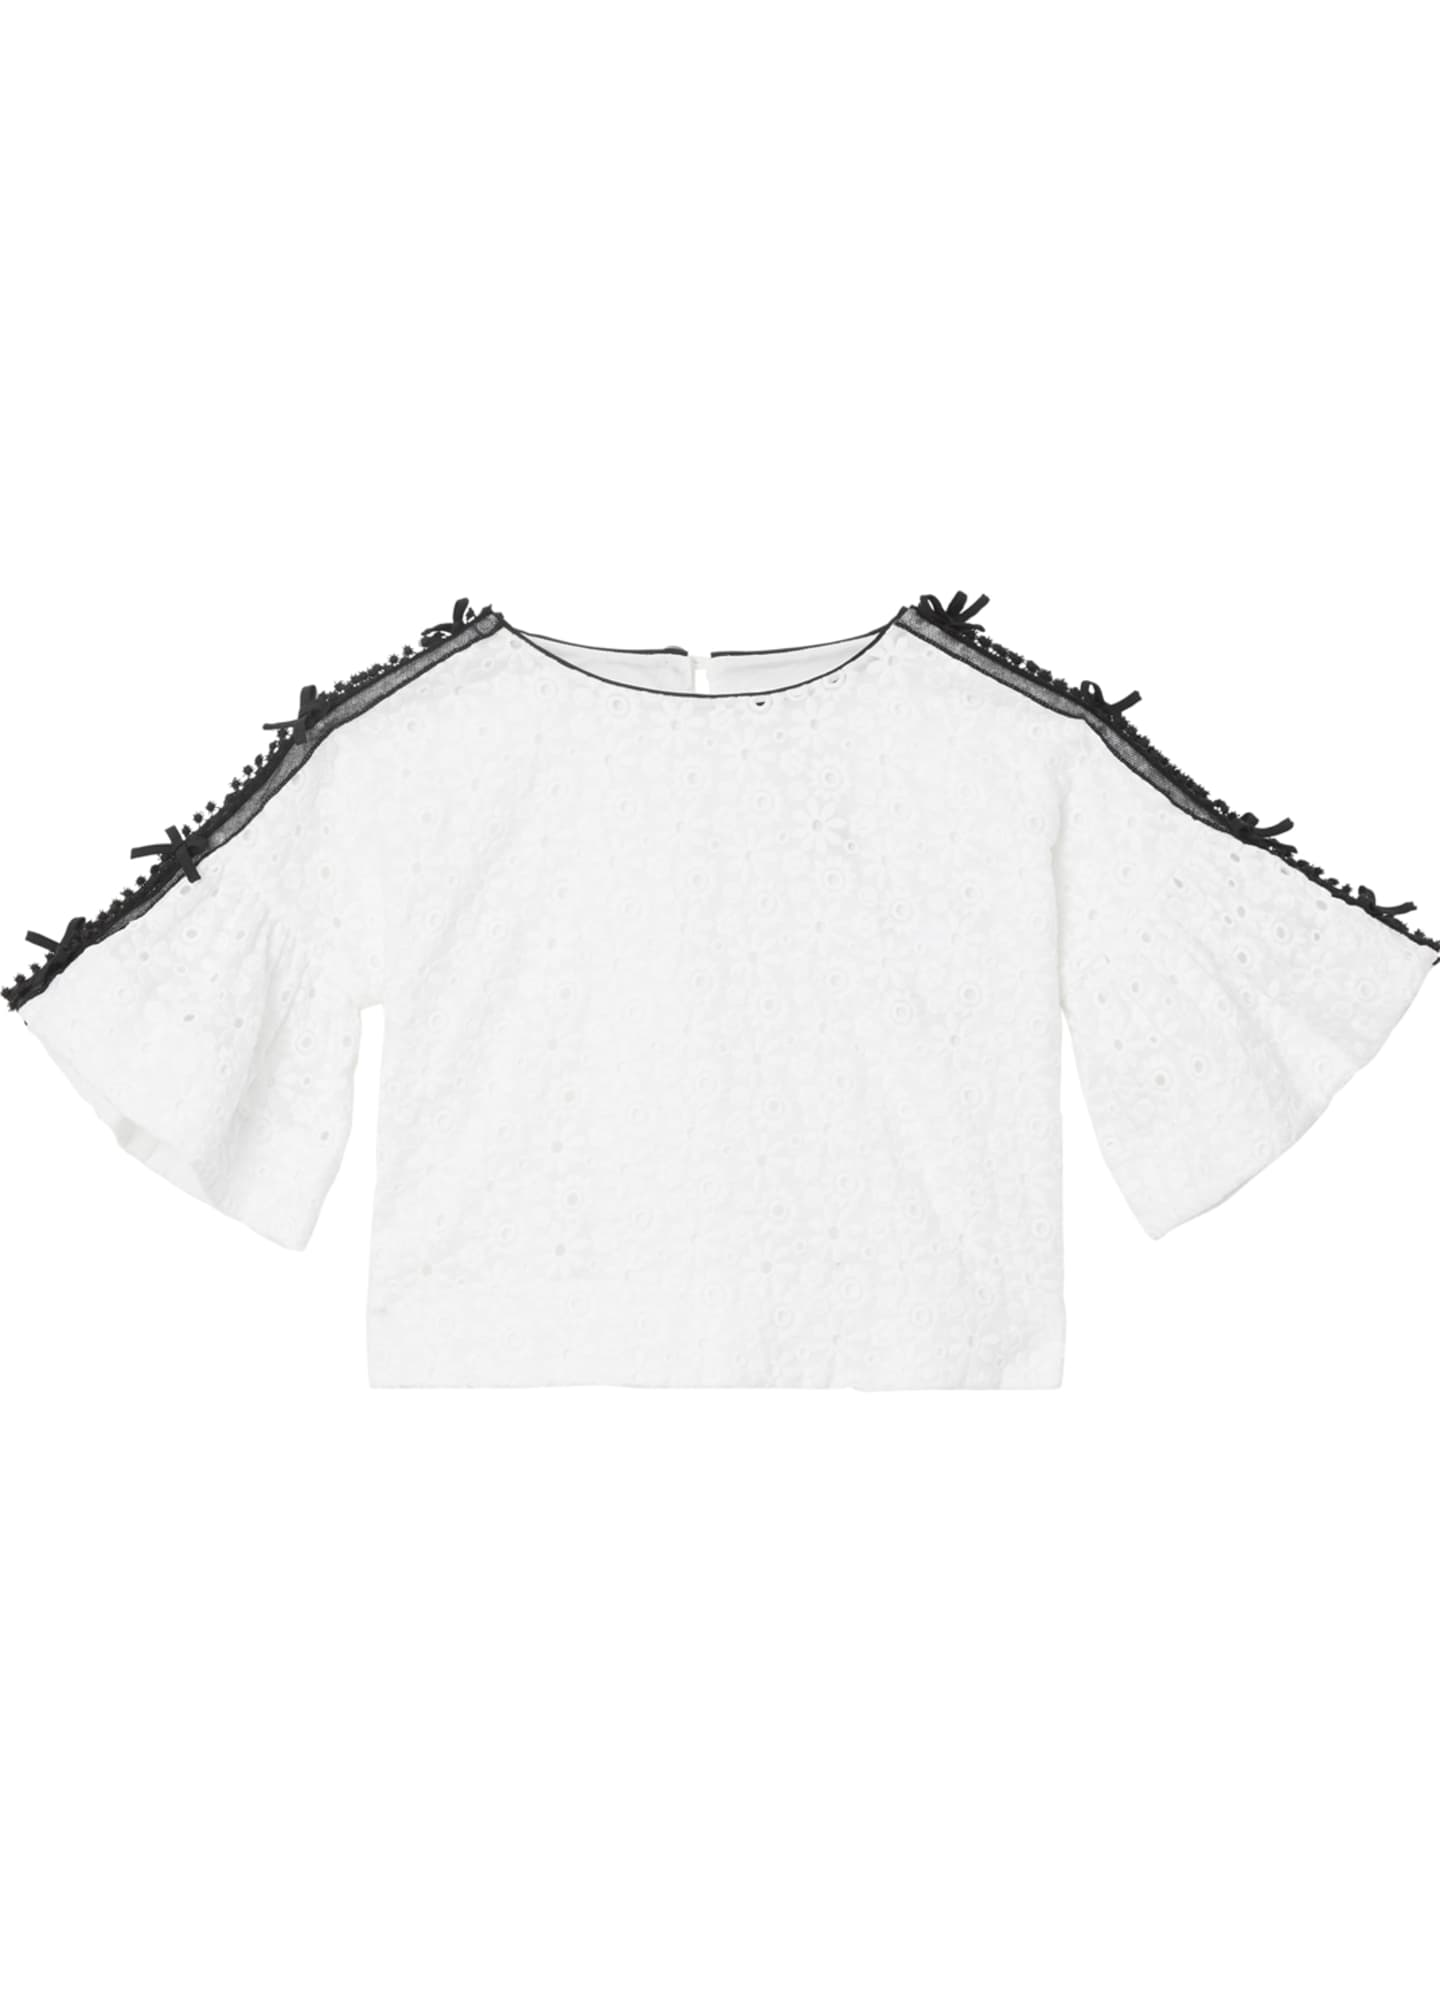 Burberry Anca Lace Embroidered Fluted Sleeve Top, Size